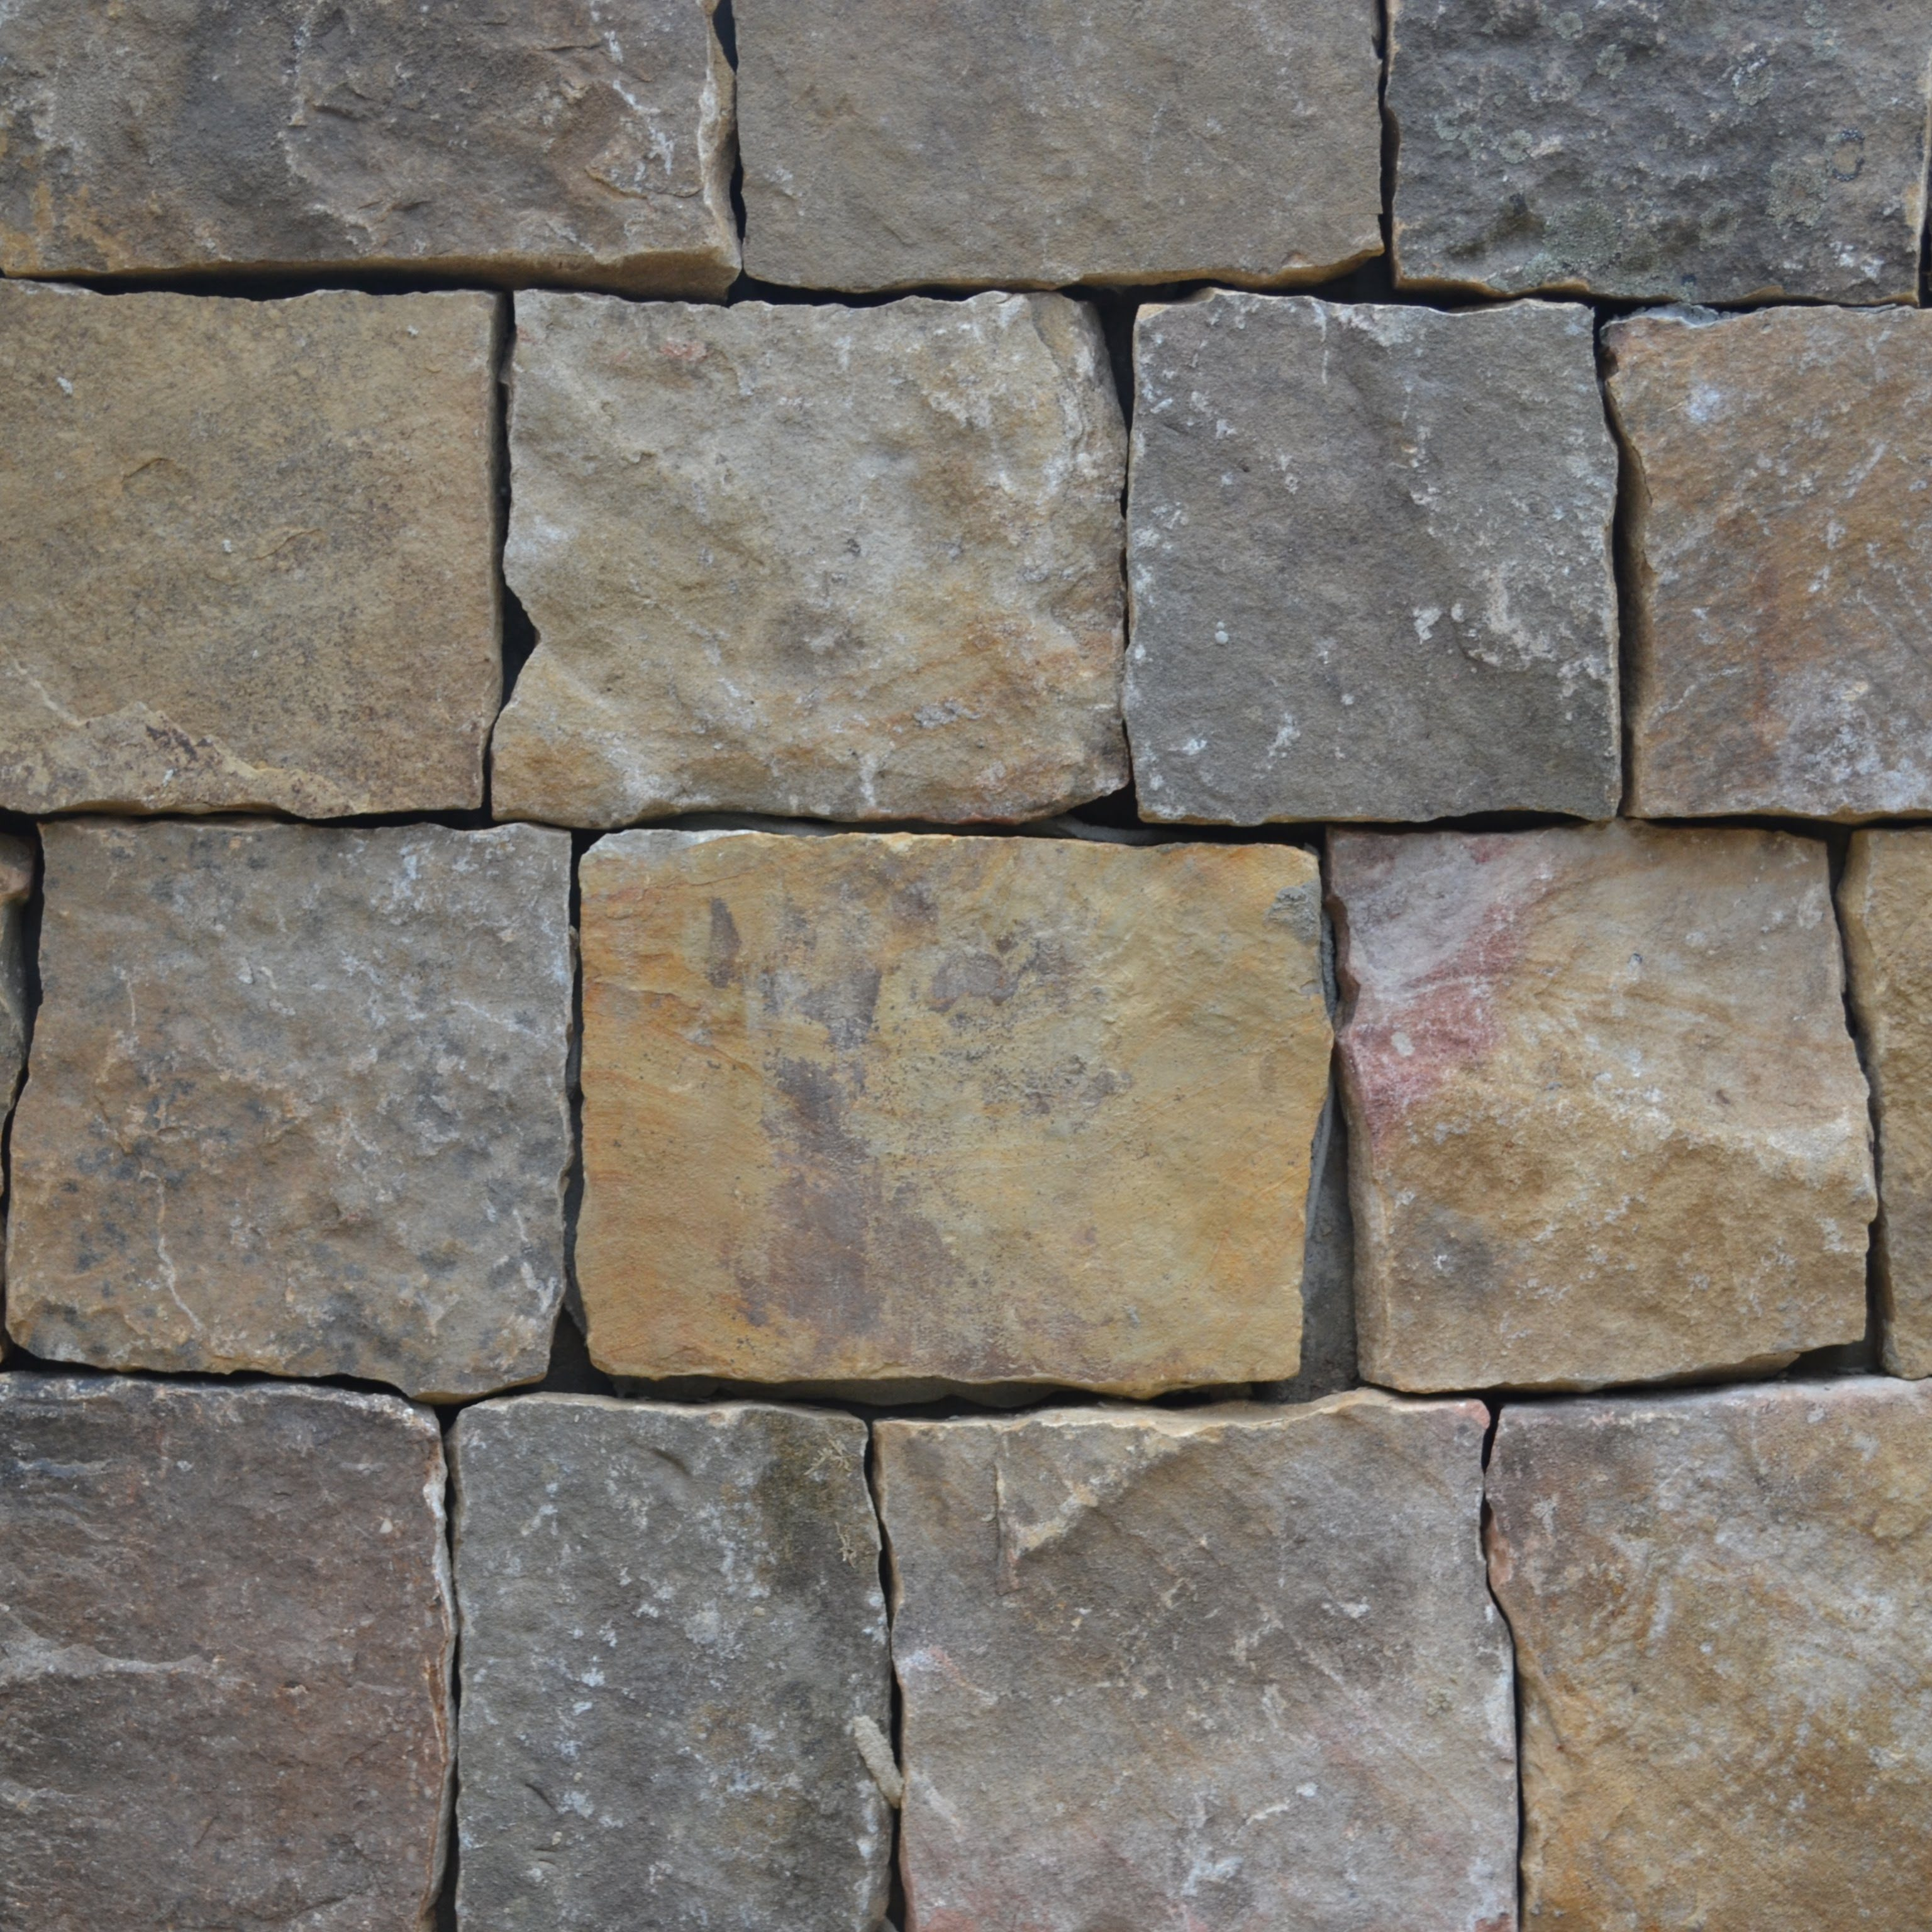 weathered ashlar